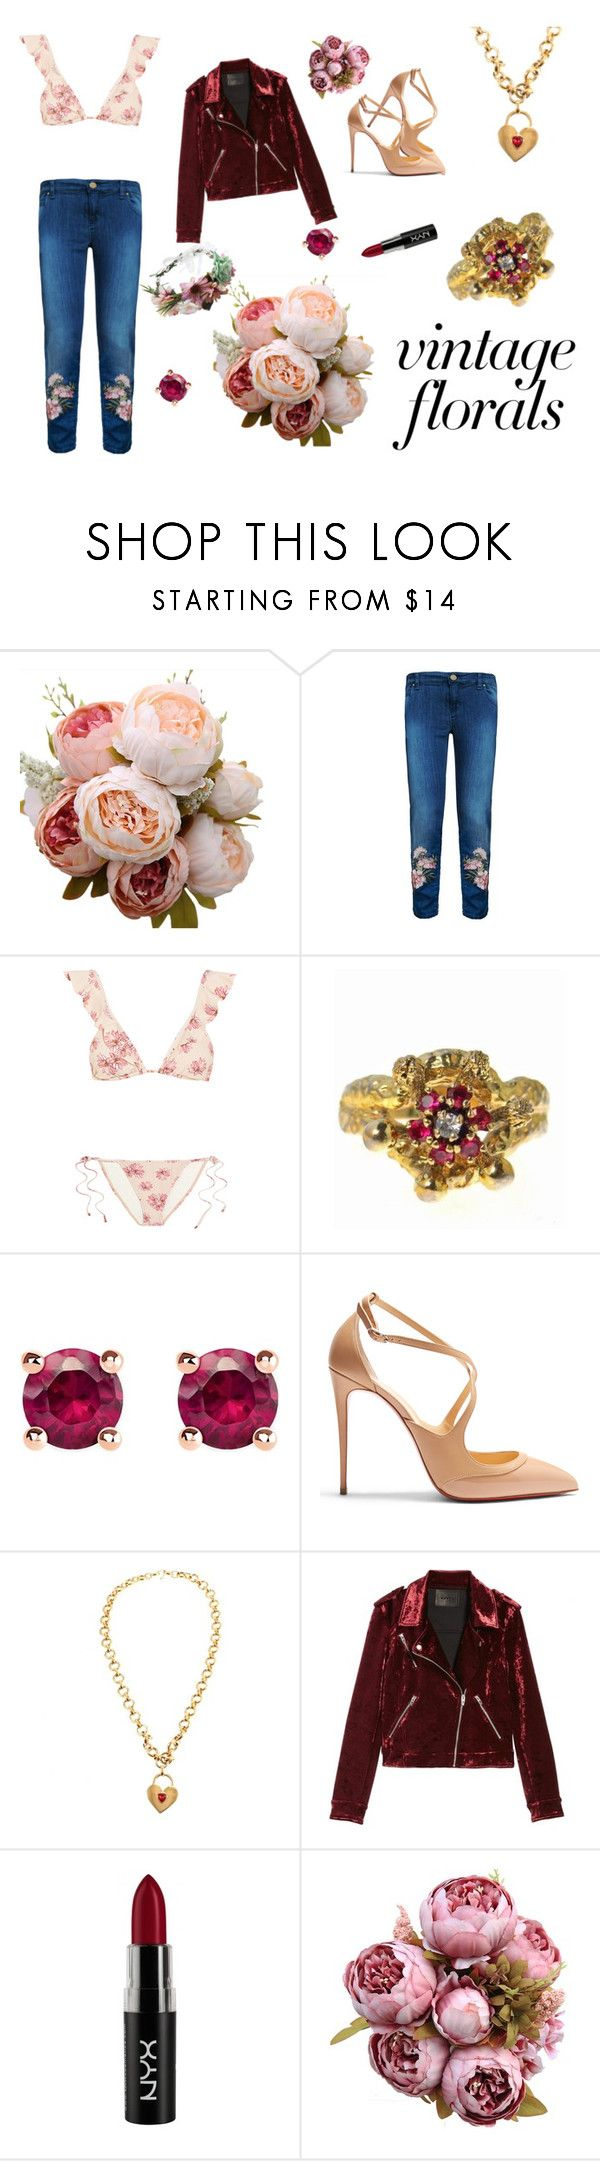 """""""young vintage fresh"""" by raestyles ❤ liked on Polyvore featuring MPJ, Eberjey, Thomas Sabo, Christian Louboutin, Chanel, BLANKNYC, NYX, vintage and vintageflorals"""